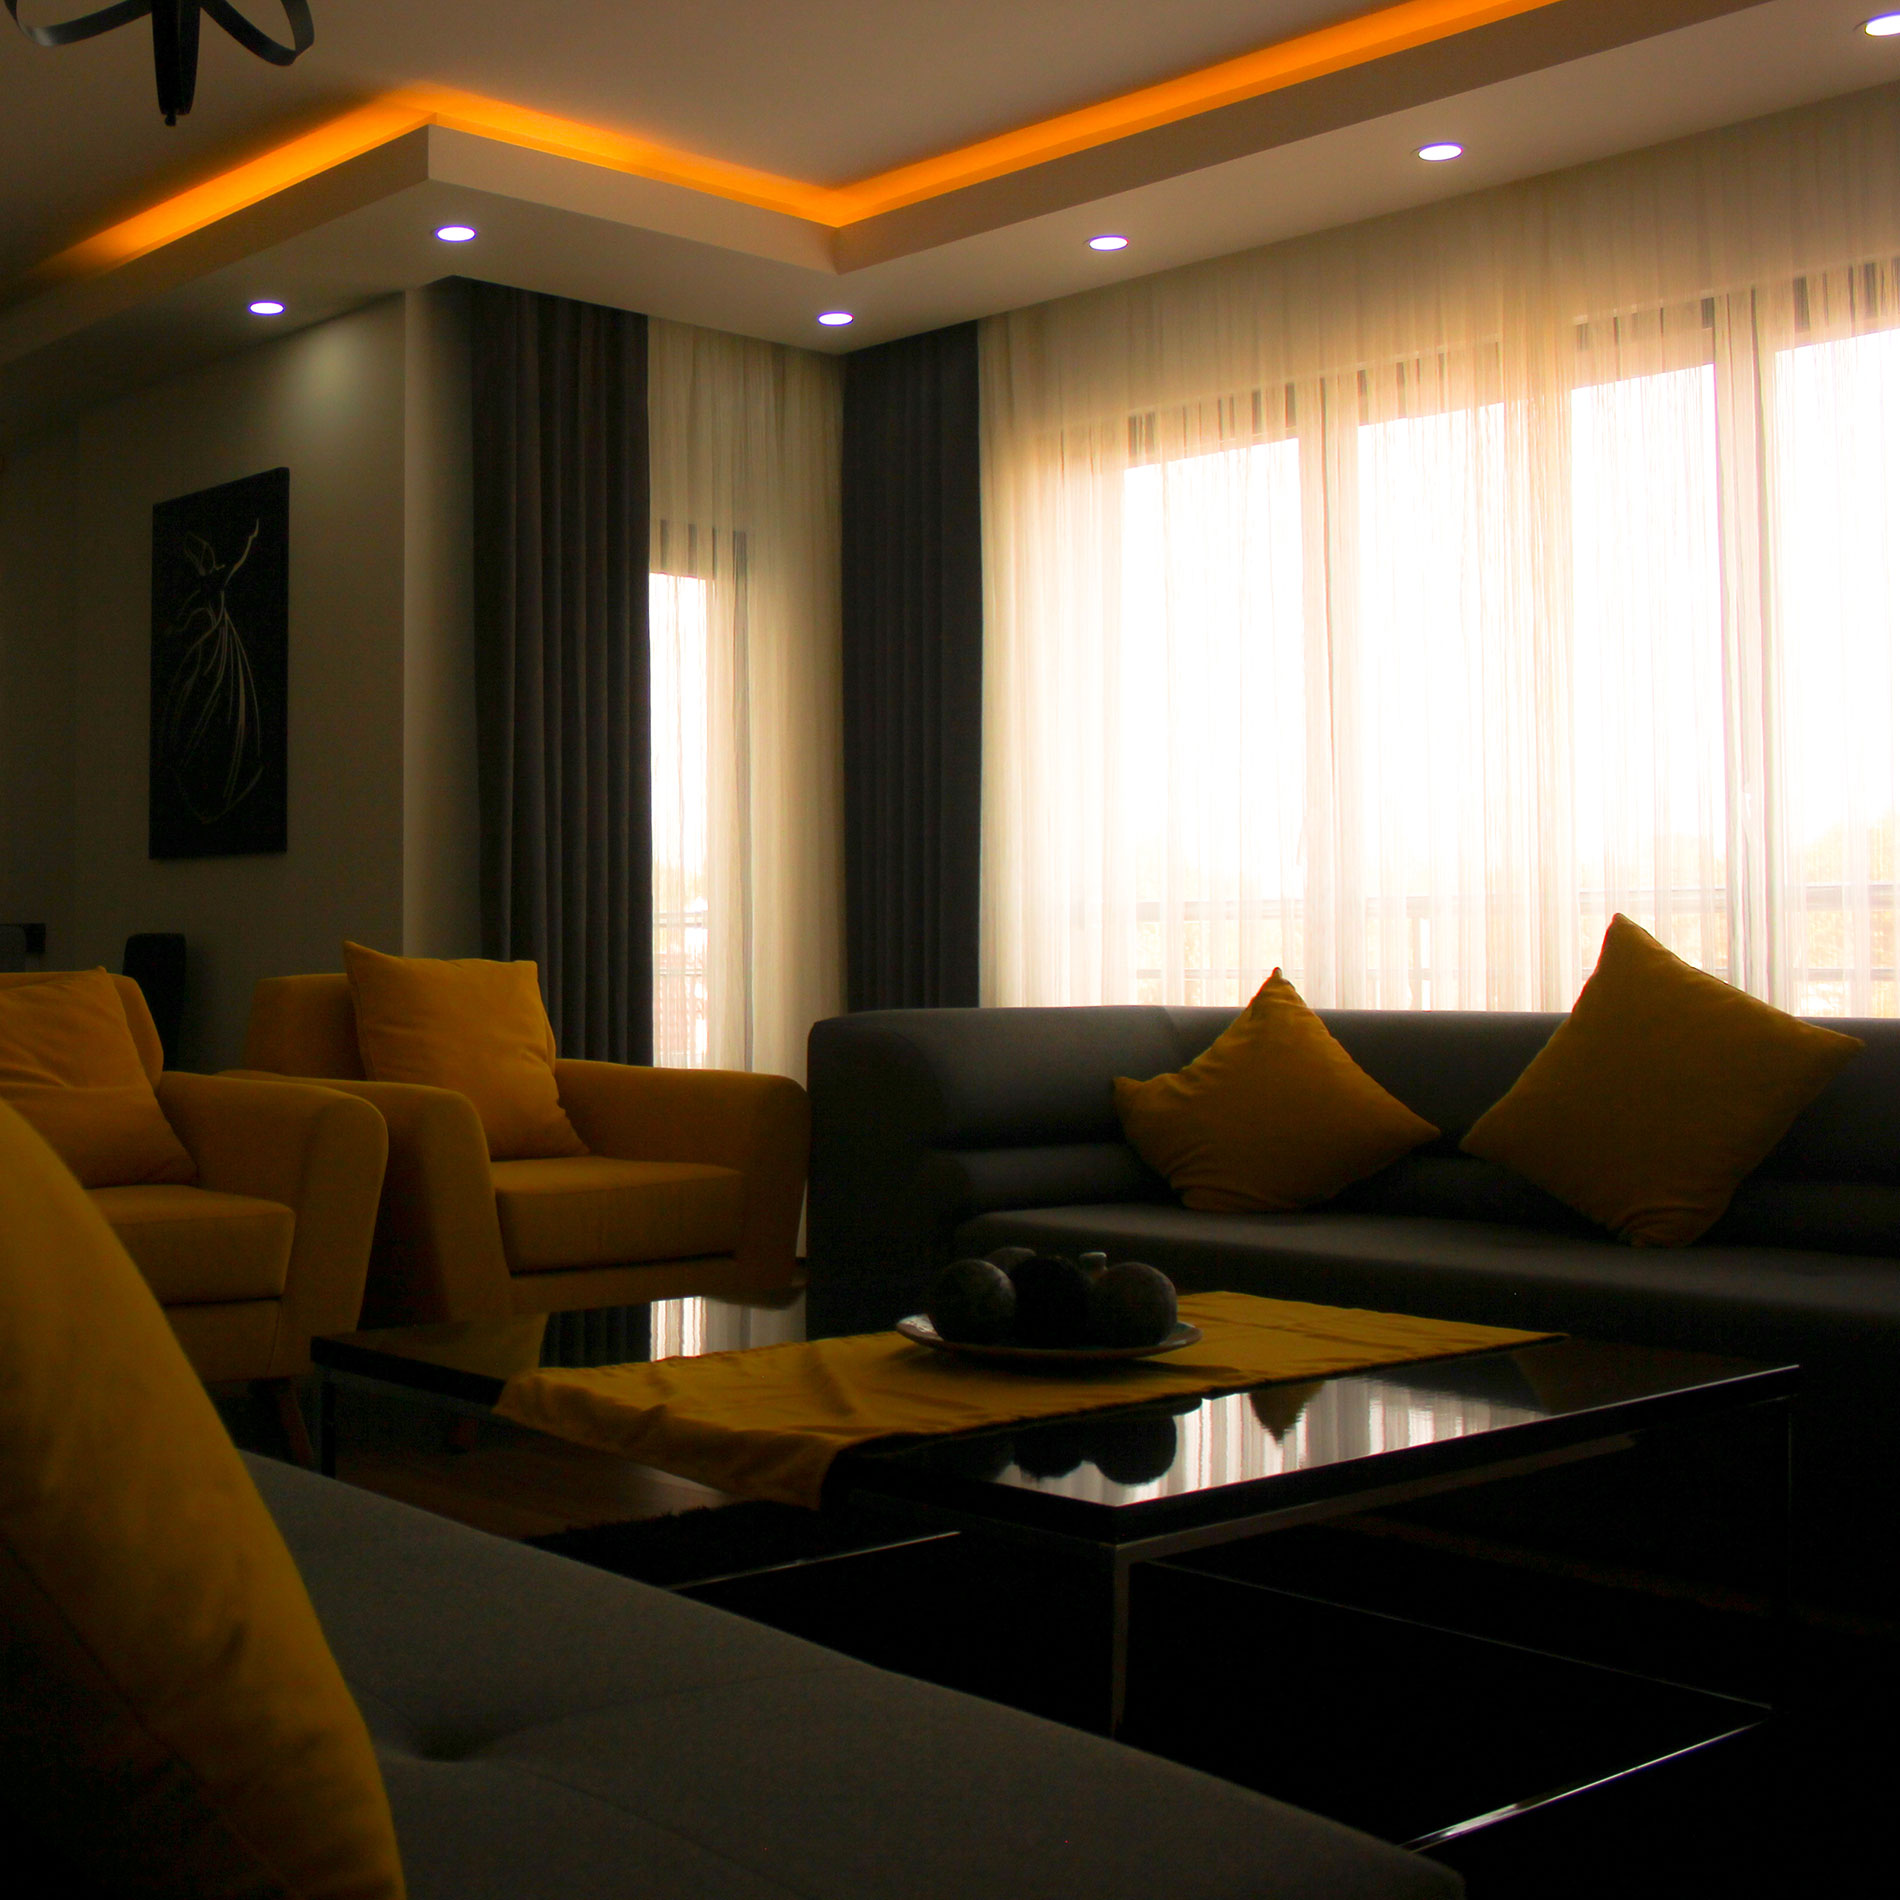 Home Interior Design Styles: Interior Design Styles You Might Consider When You Buy